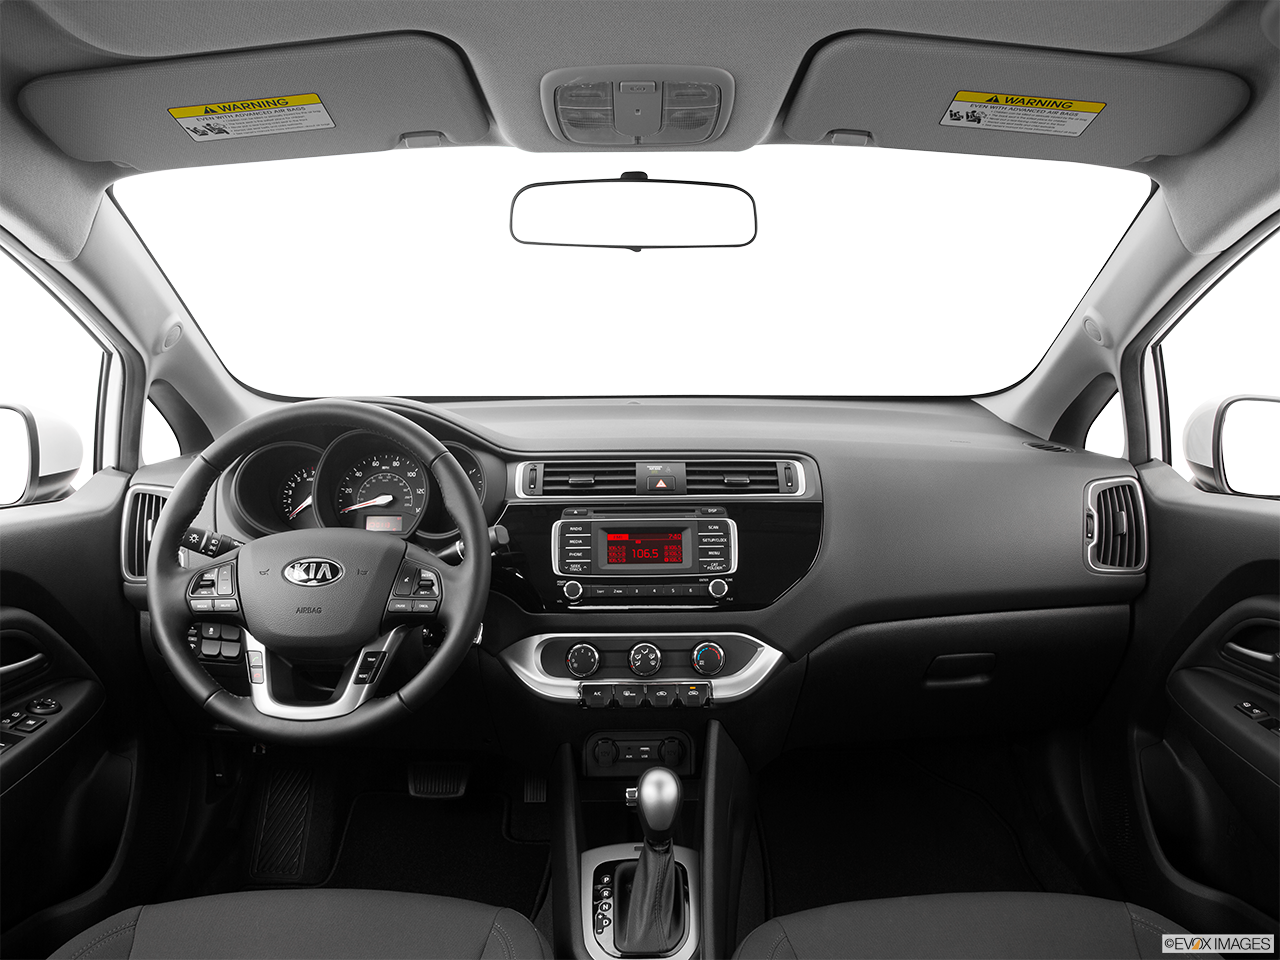 Interior View Of 2016 Kia Rio in Alhambra